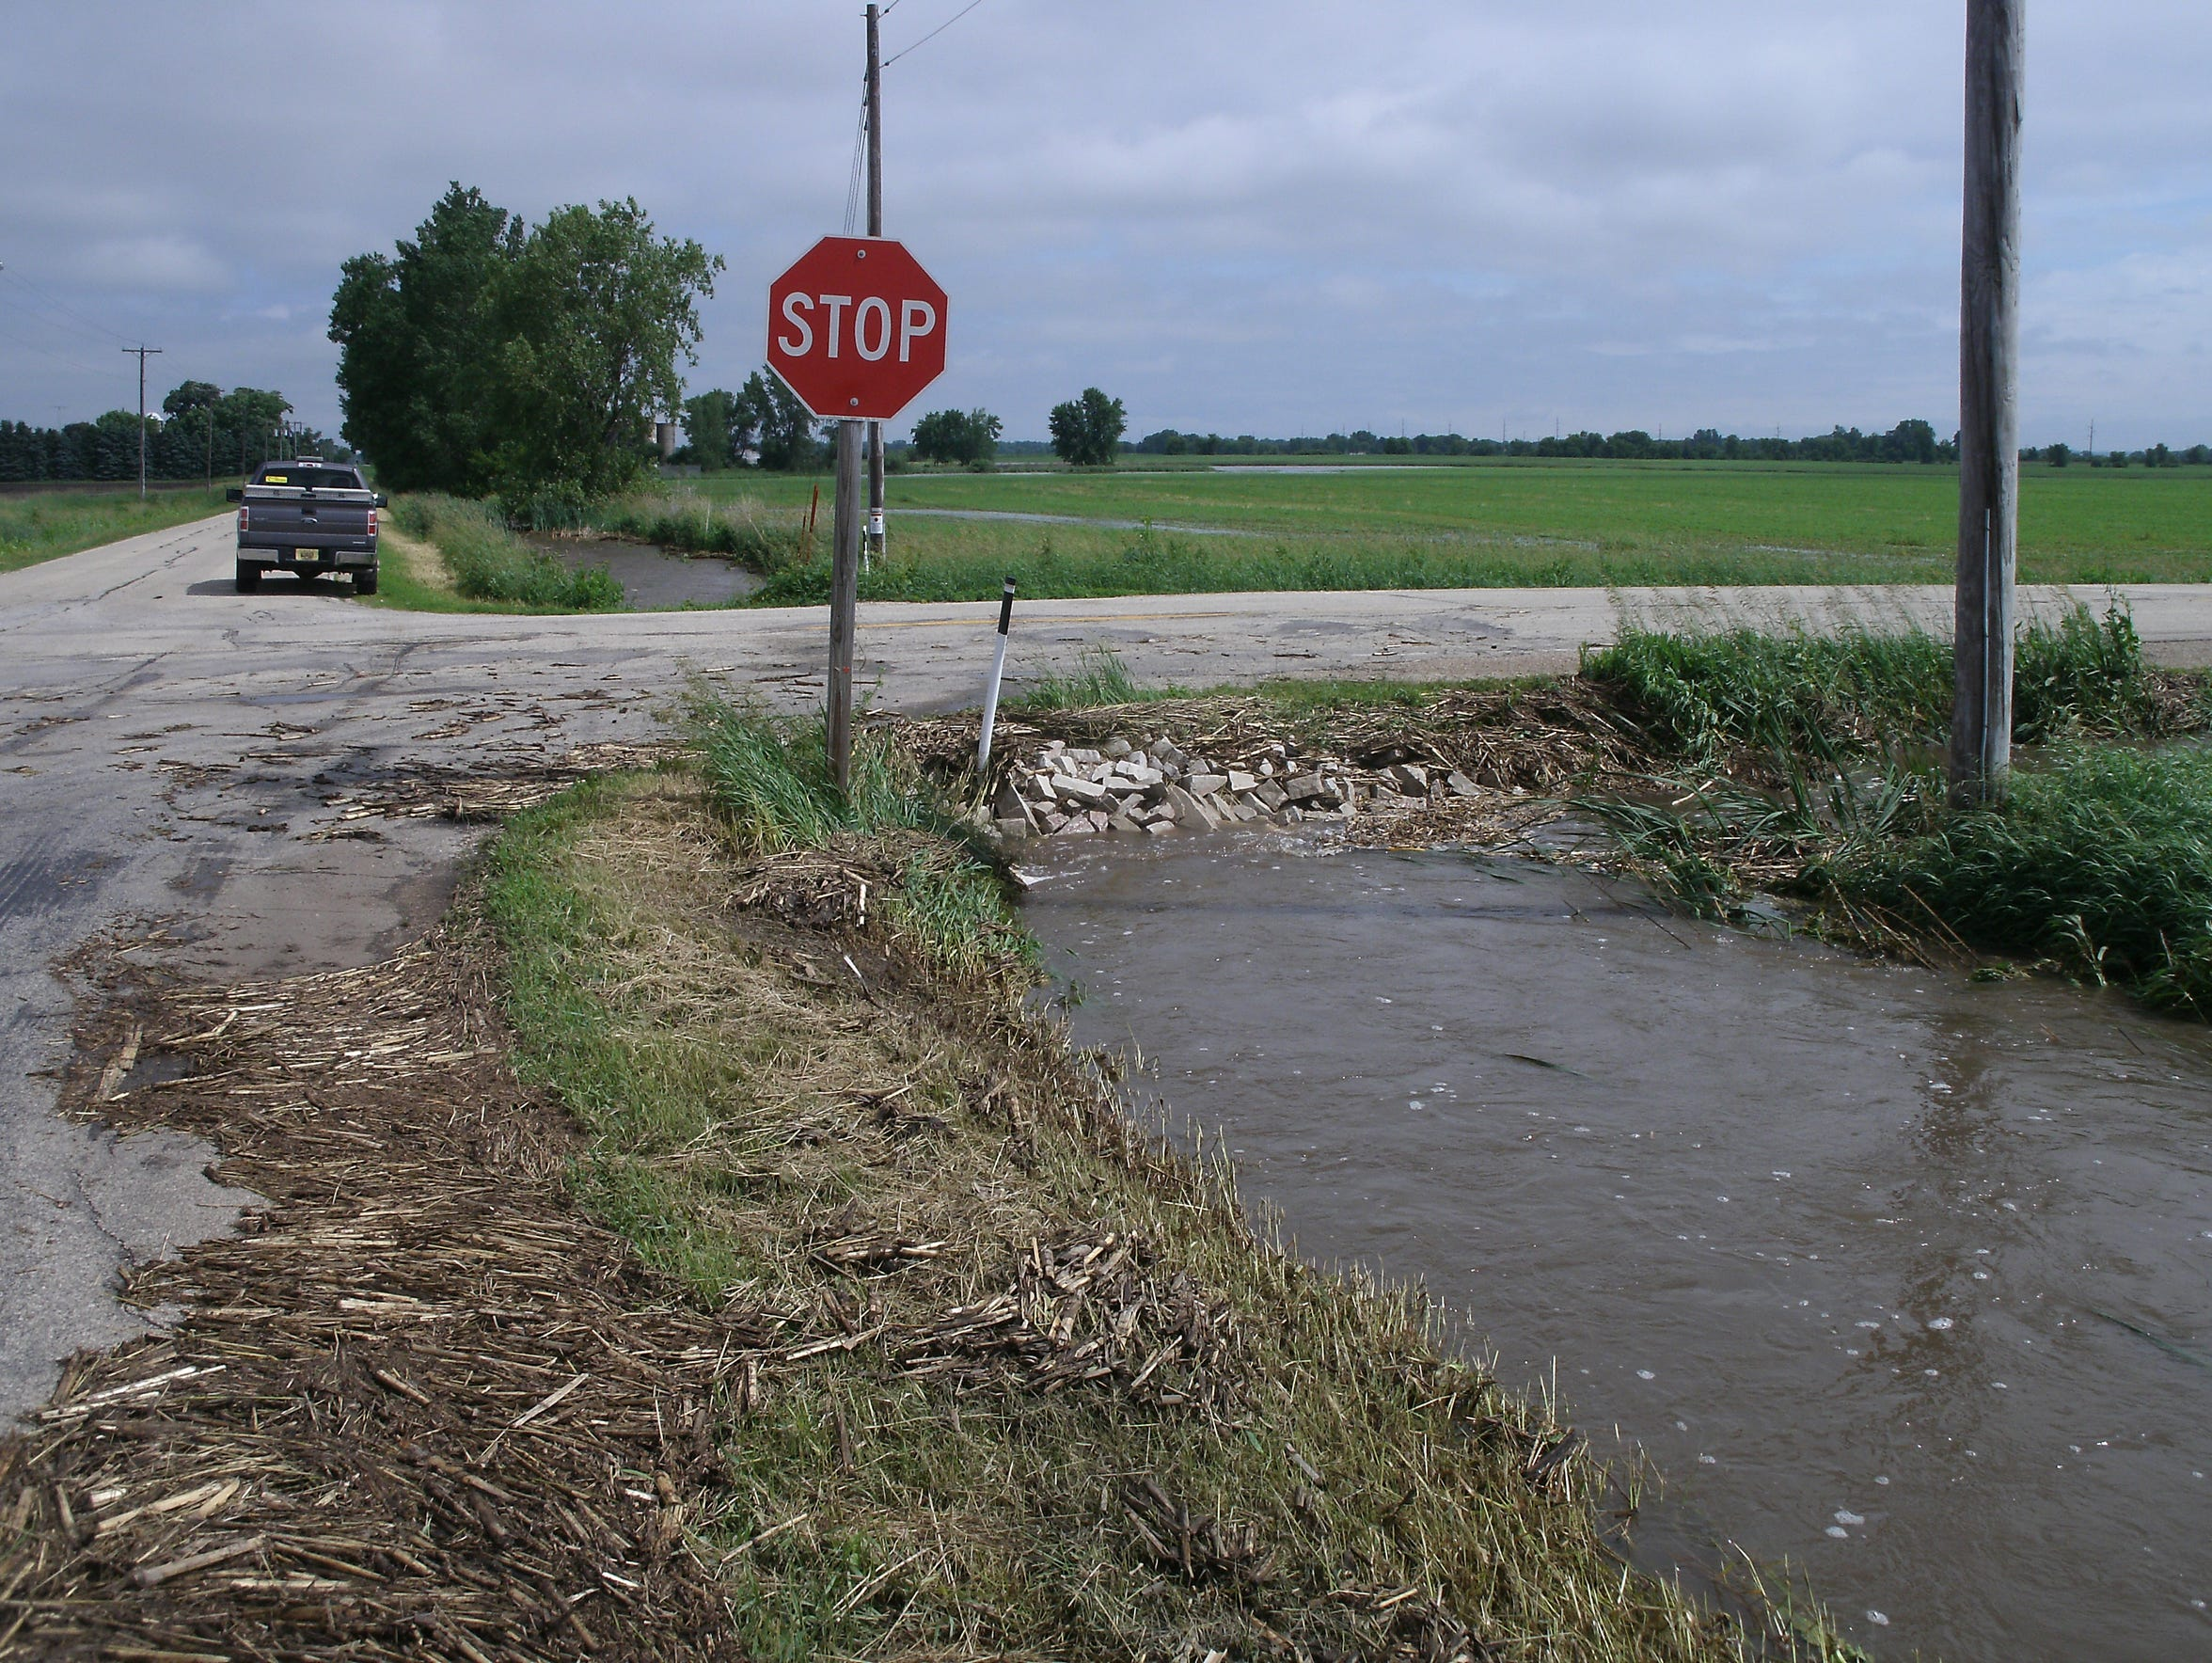 Prior to construction of a box culvert, rain would